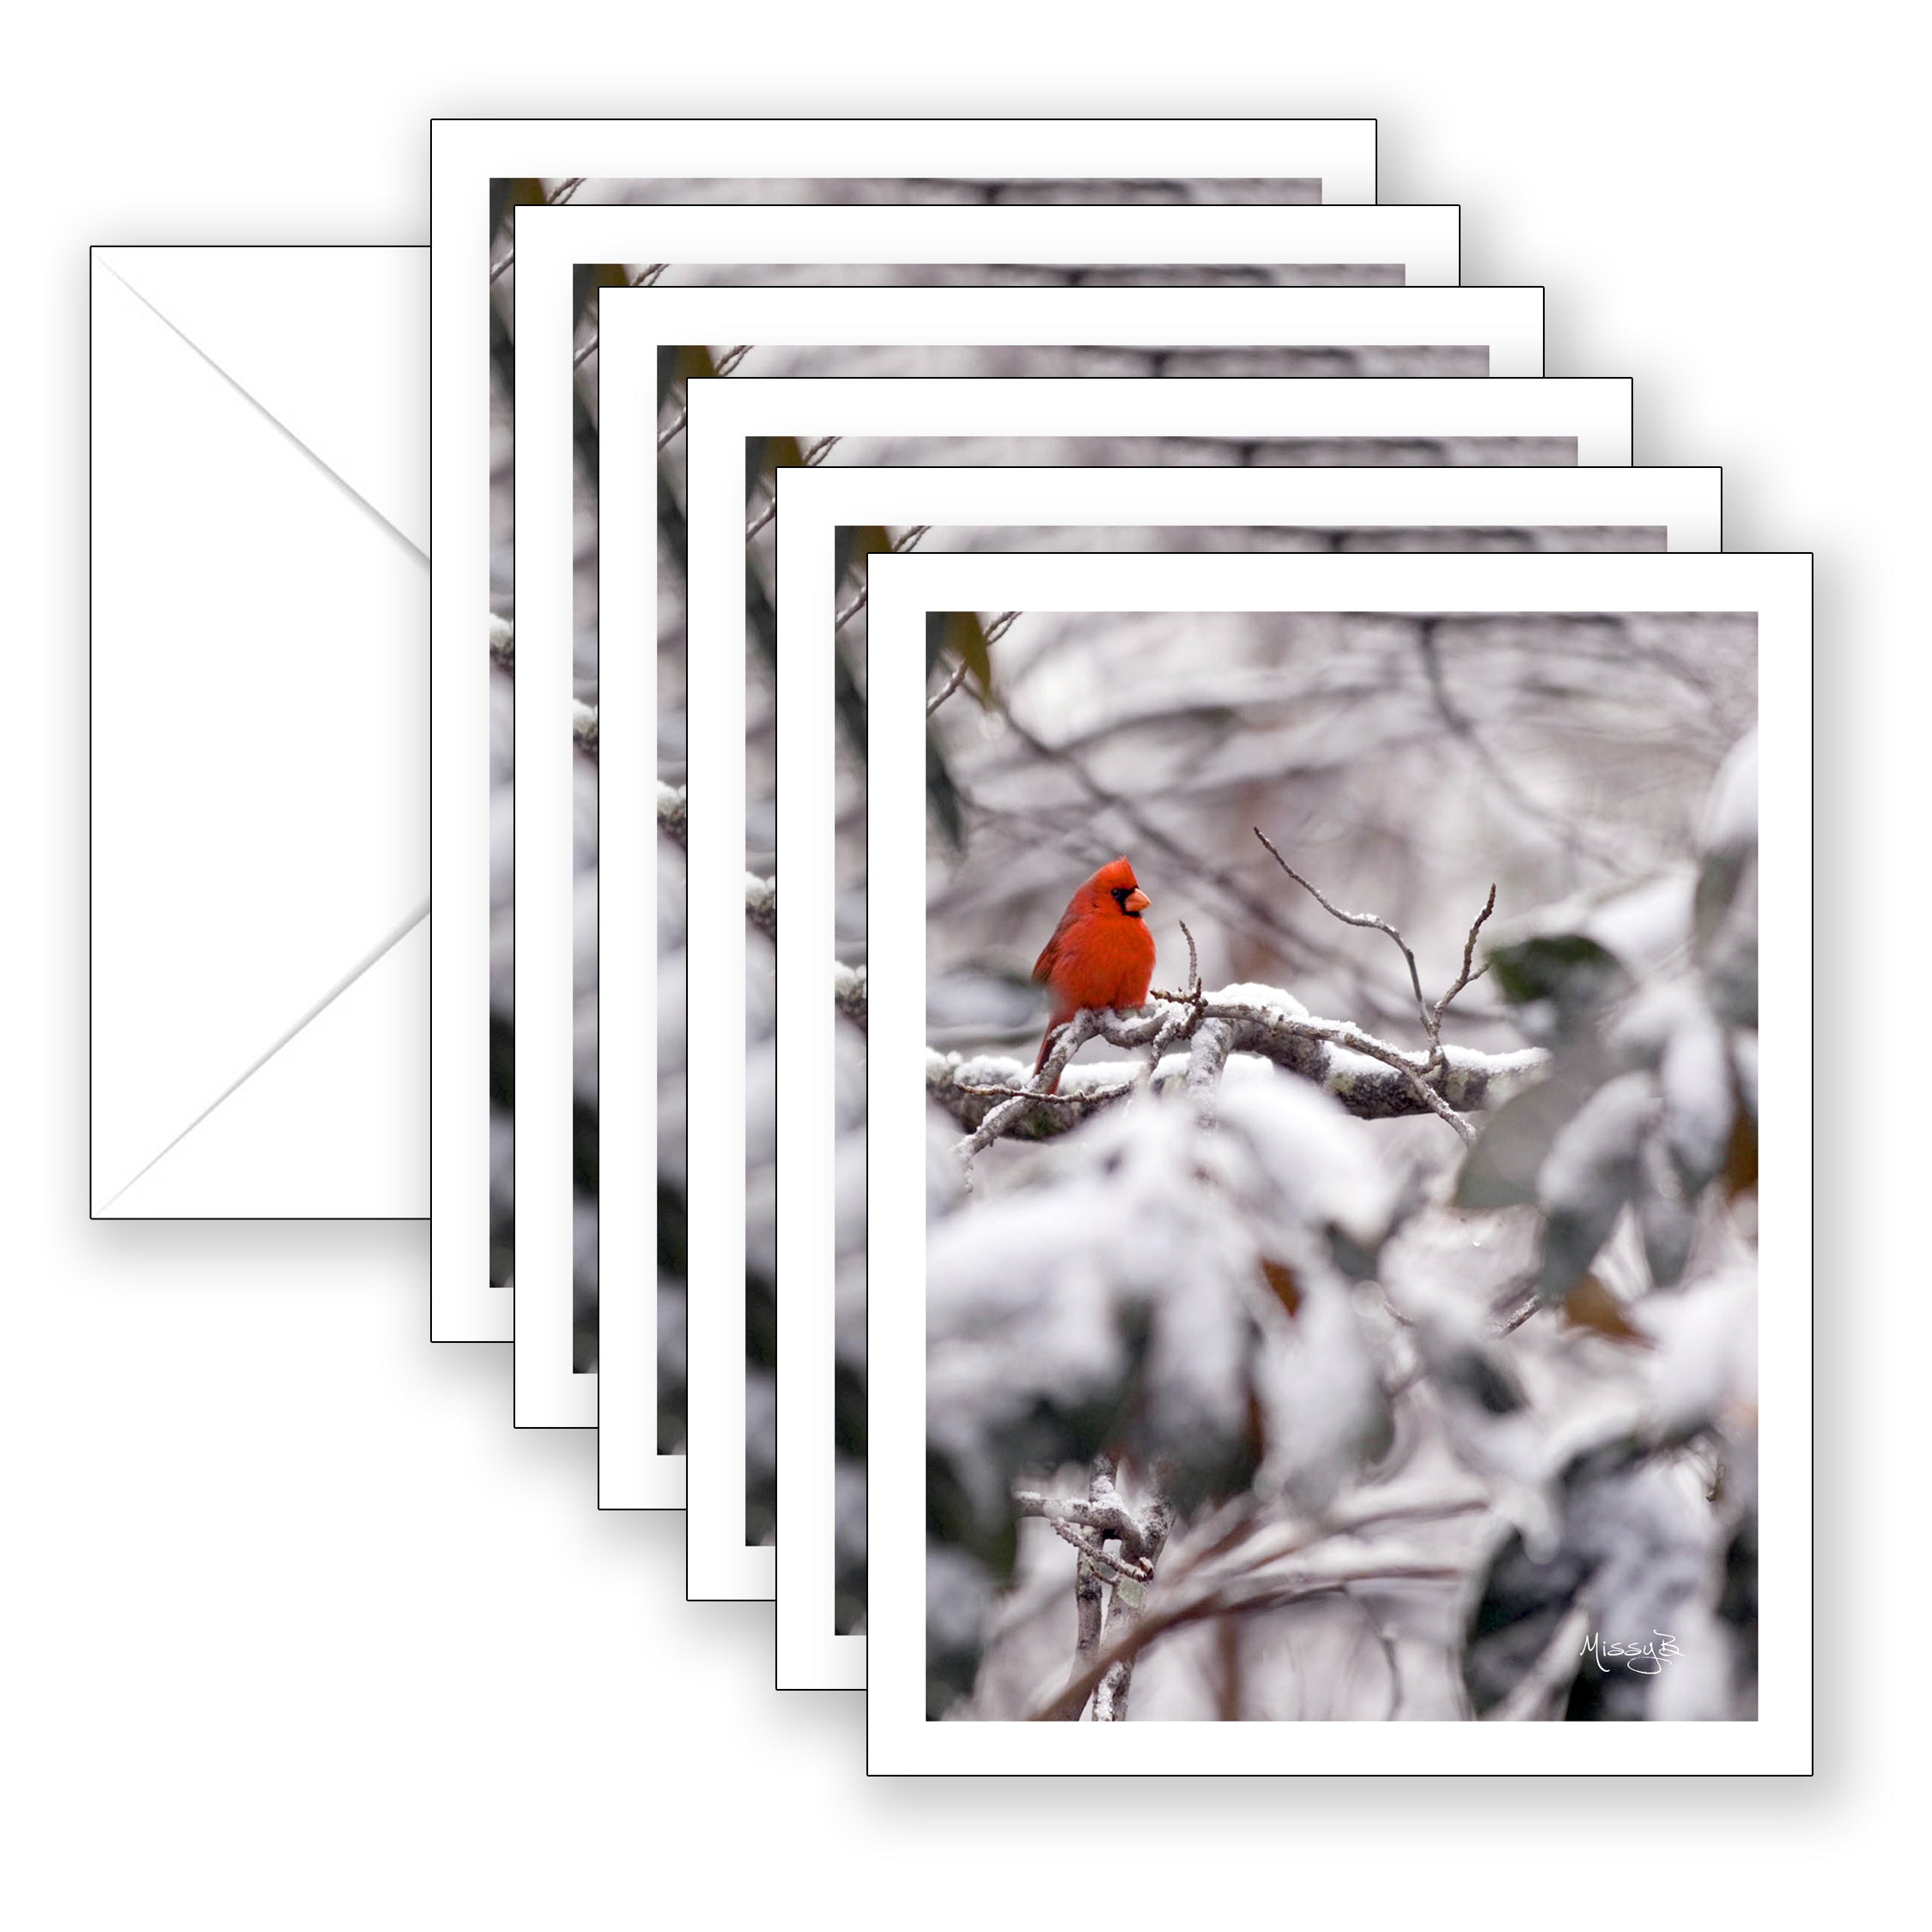 Missy's Red Bird Boxed Notecard Collection